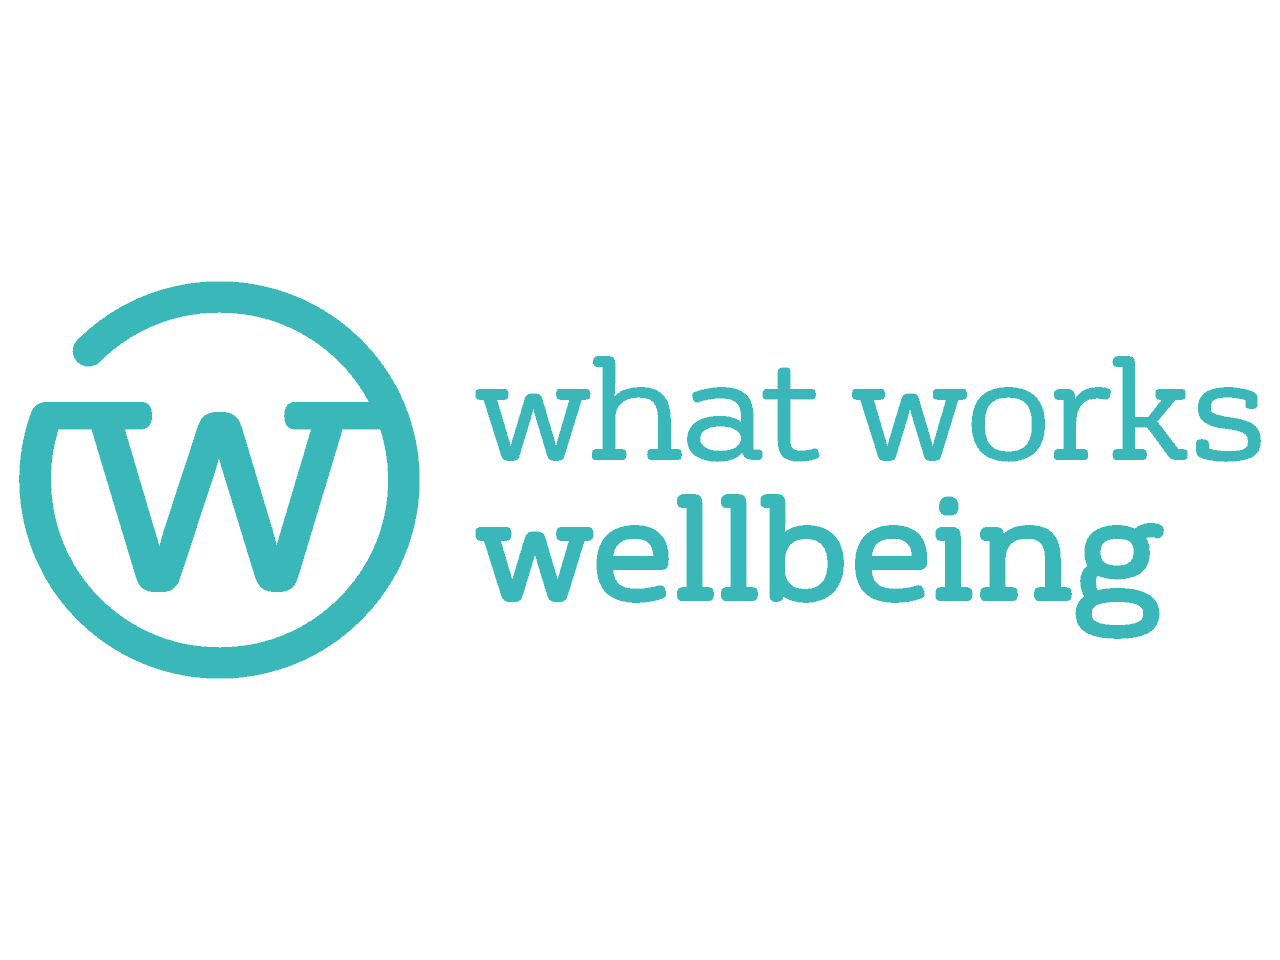 whatworkwellbeing